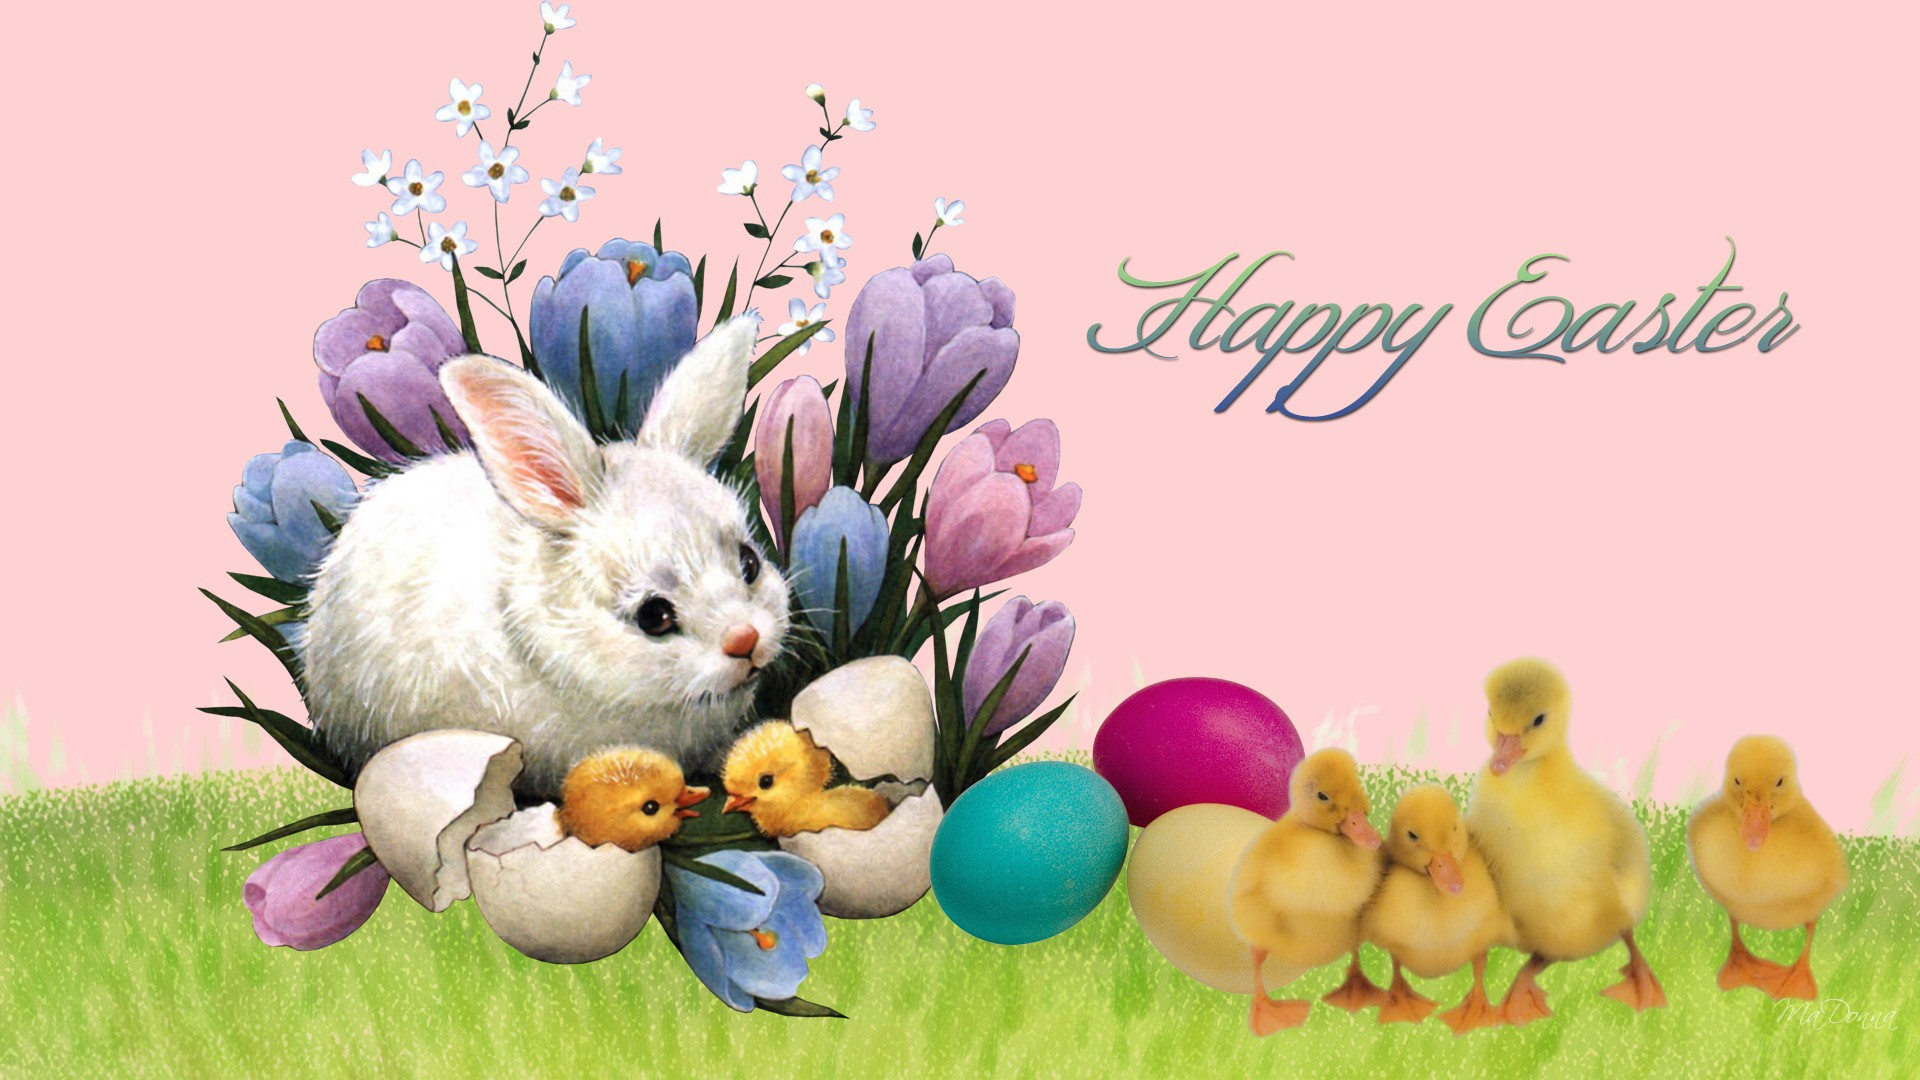 Happy Easter Cute Bunny HD Images Download 1920x1080